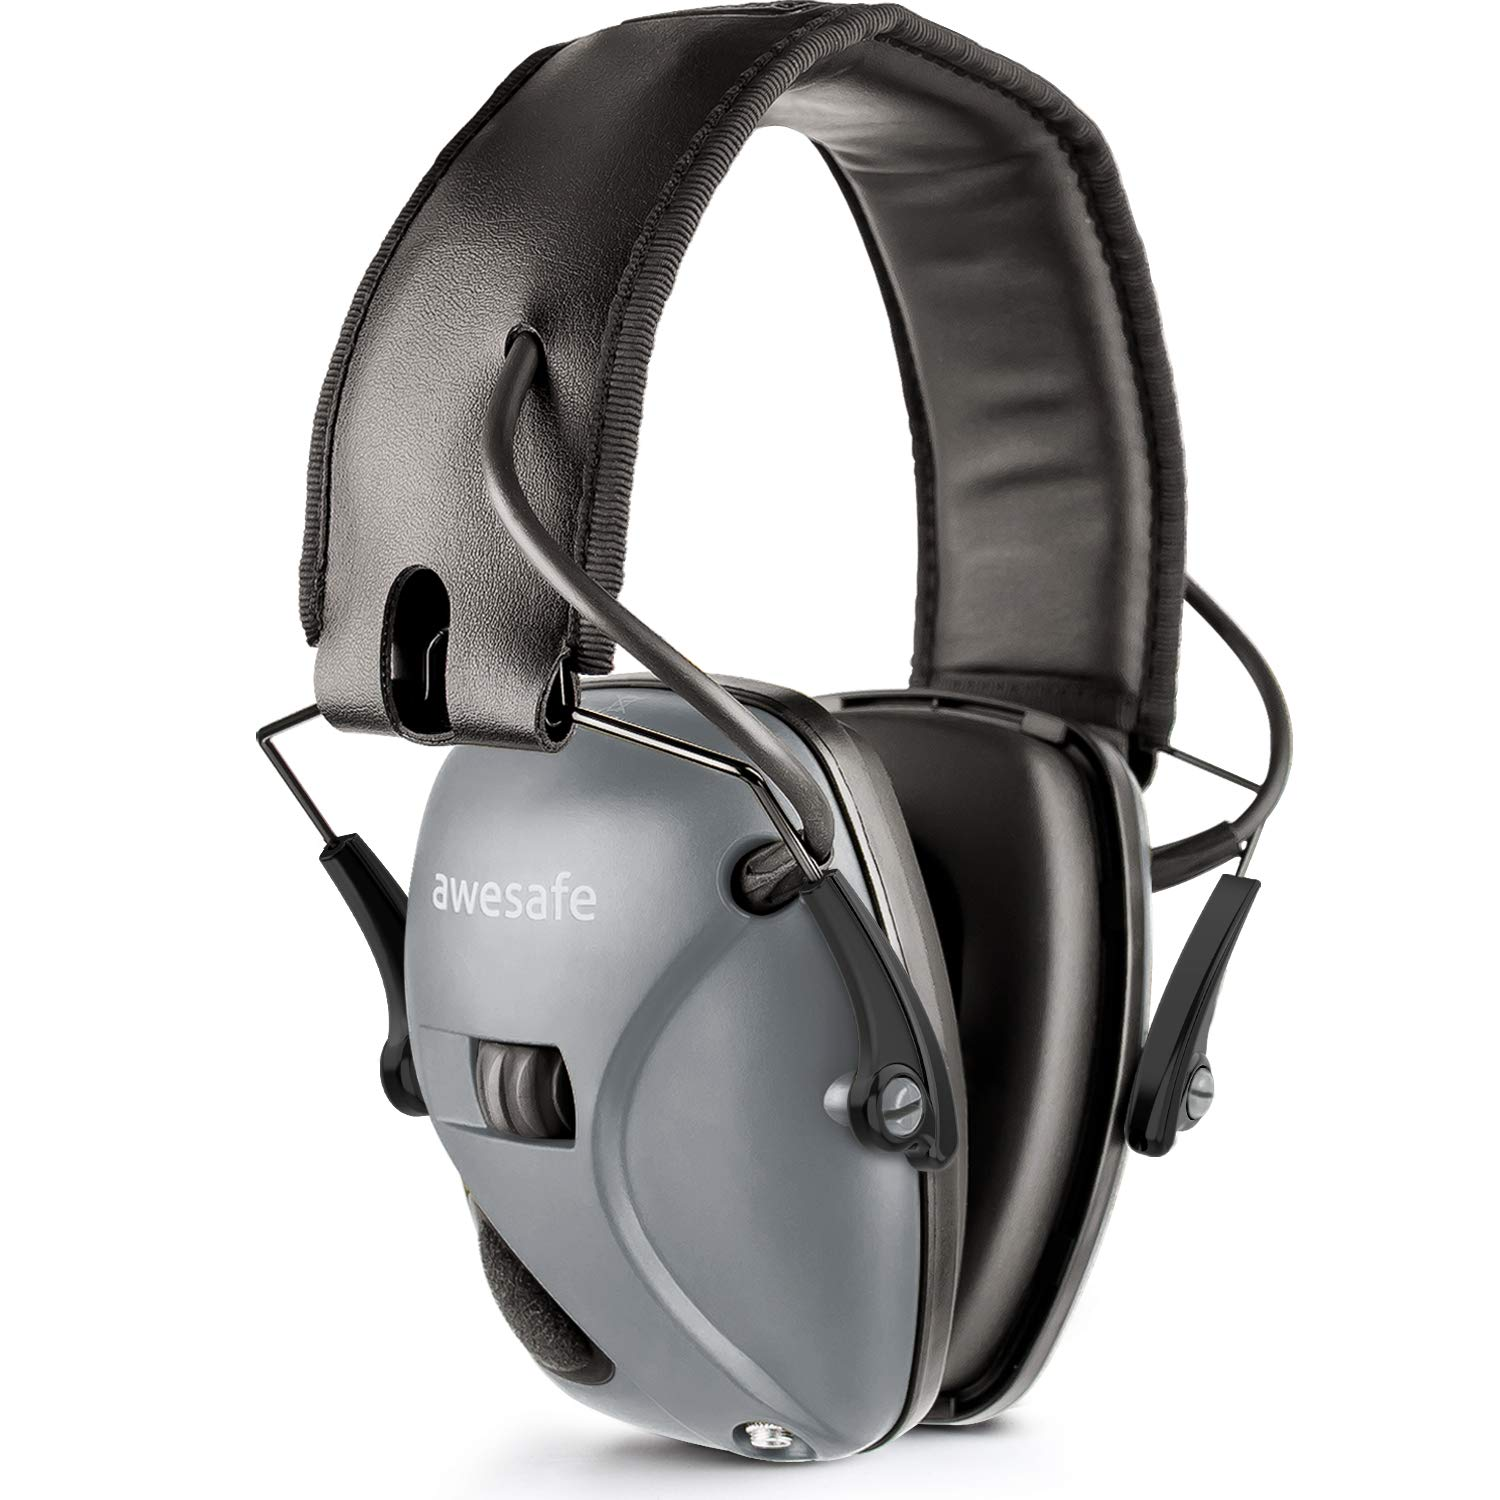 AWESAFE Electronic Shooting Earmuff, GF01 Noise Reduction Sound Amplification Electronic Safety Ear Muffs, Ear Protection, NRR 22 dB, Ideal for Shooting and Hunting, Grey … by  awesafe (Image #1)